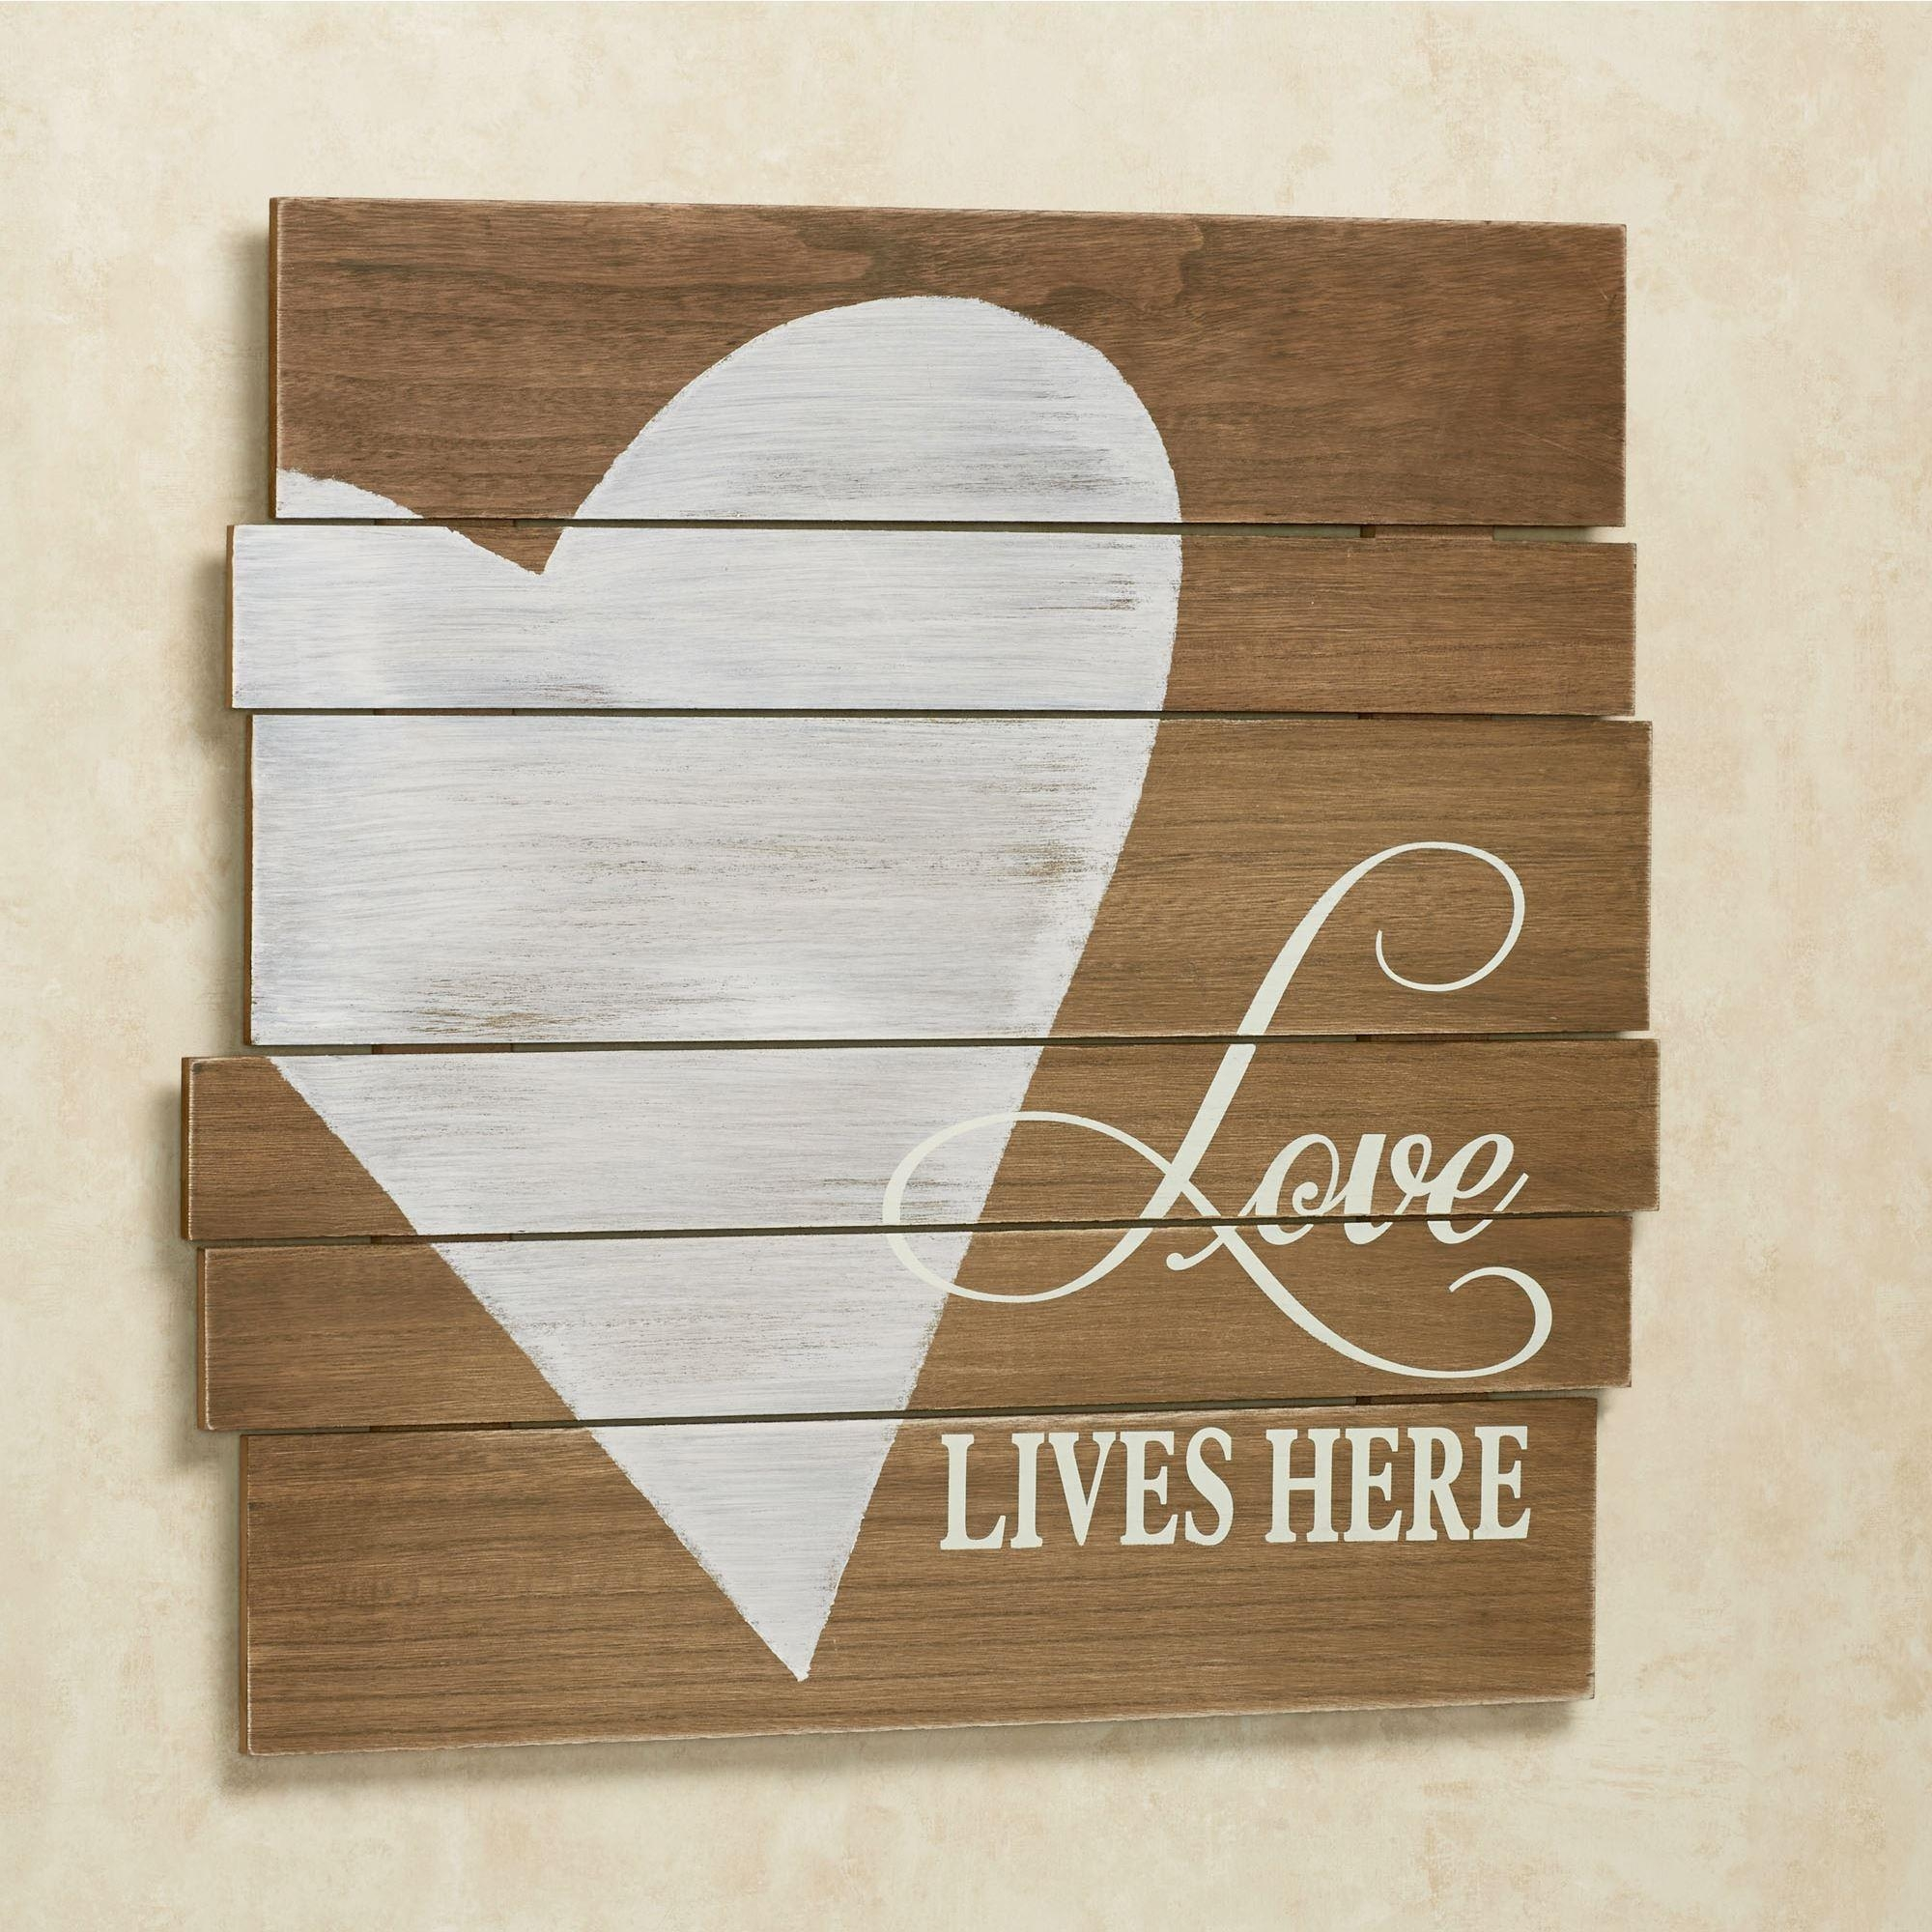 Love Lives Here Wooden Wall Art Plaque Pertaining To Inspirational Wall Plaques (View 4 of 20)